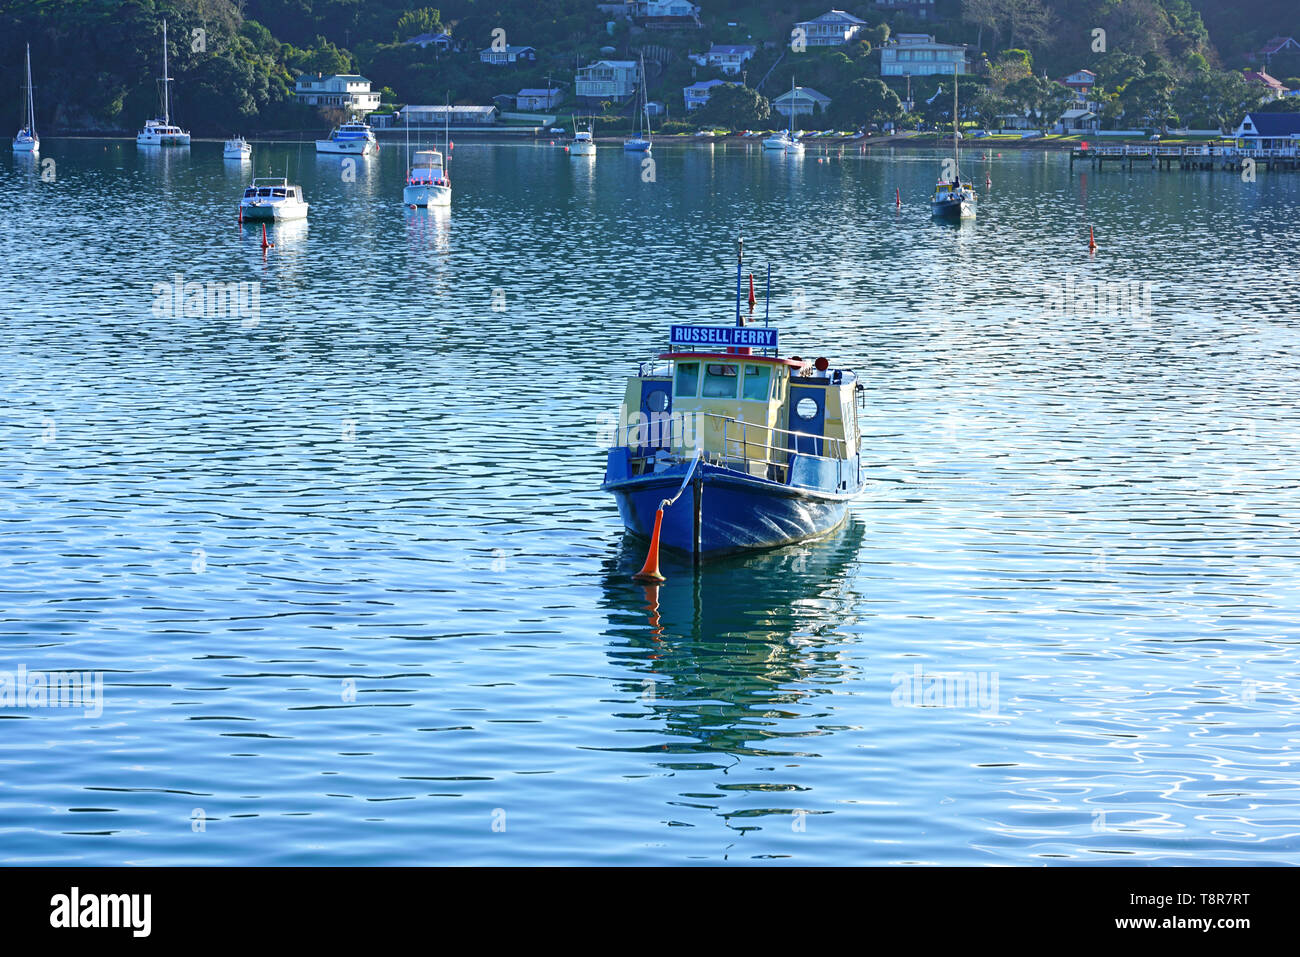 RUSSELL, NEW ZEALAND -29 JUL 2018- View of the Russell ferry in the Bay of Islands in Russell (Kororareka), the first permanent European settlement an - Stock Image